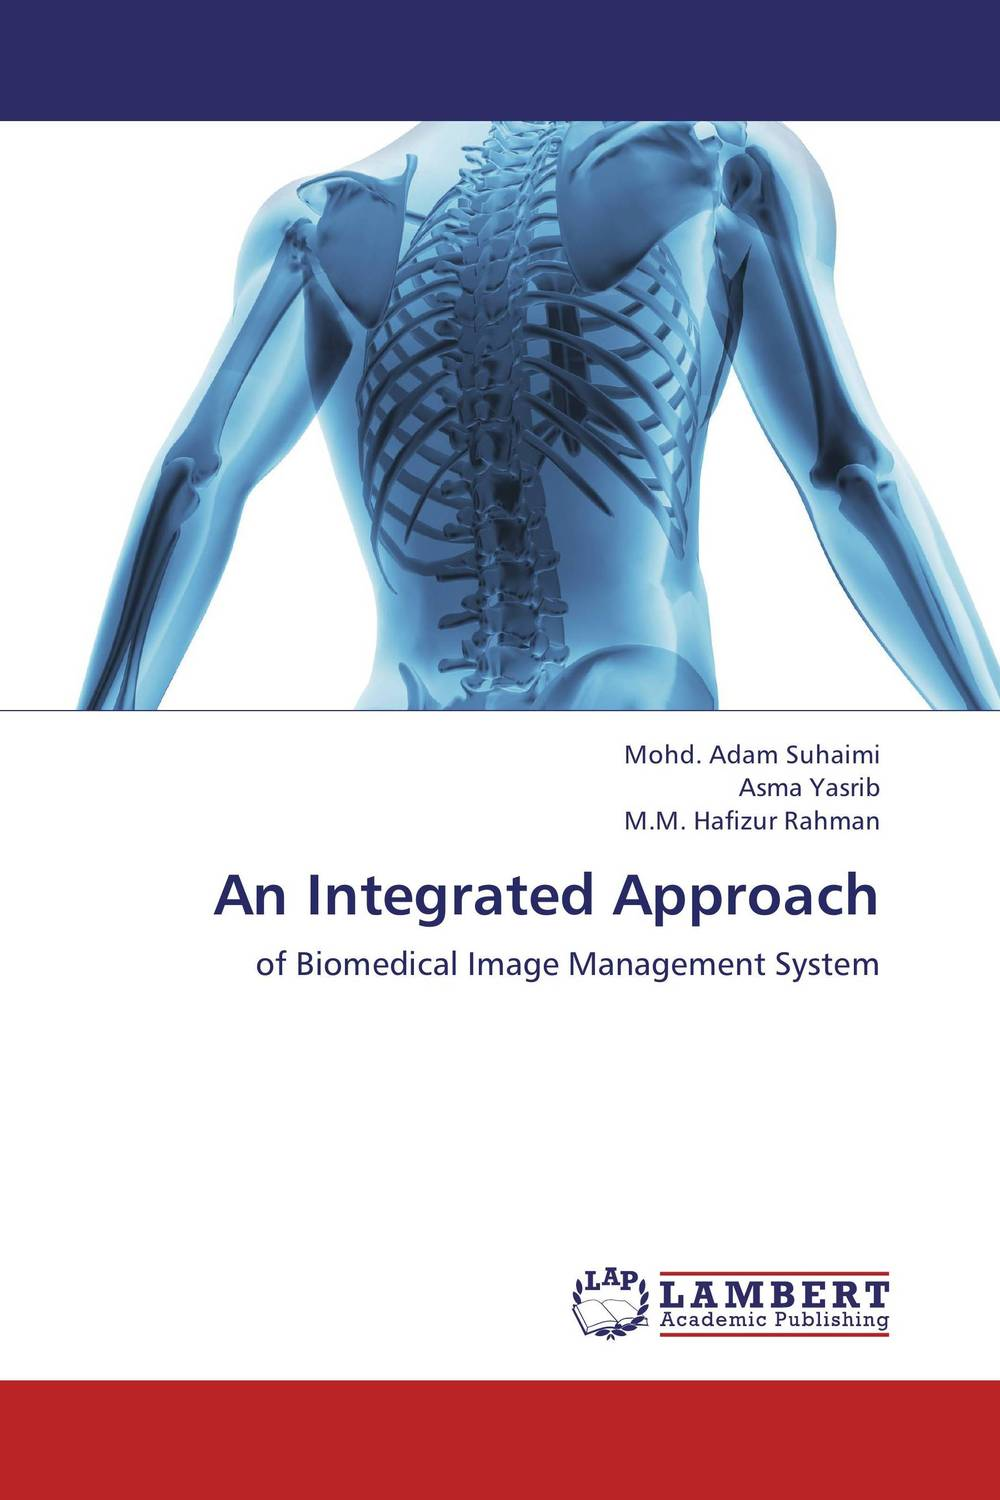 An Integrated Approach franke bibliotheca cardiologica ballistocardiogra phy research and computer diagnosis